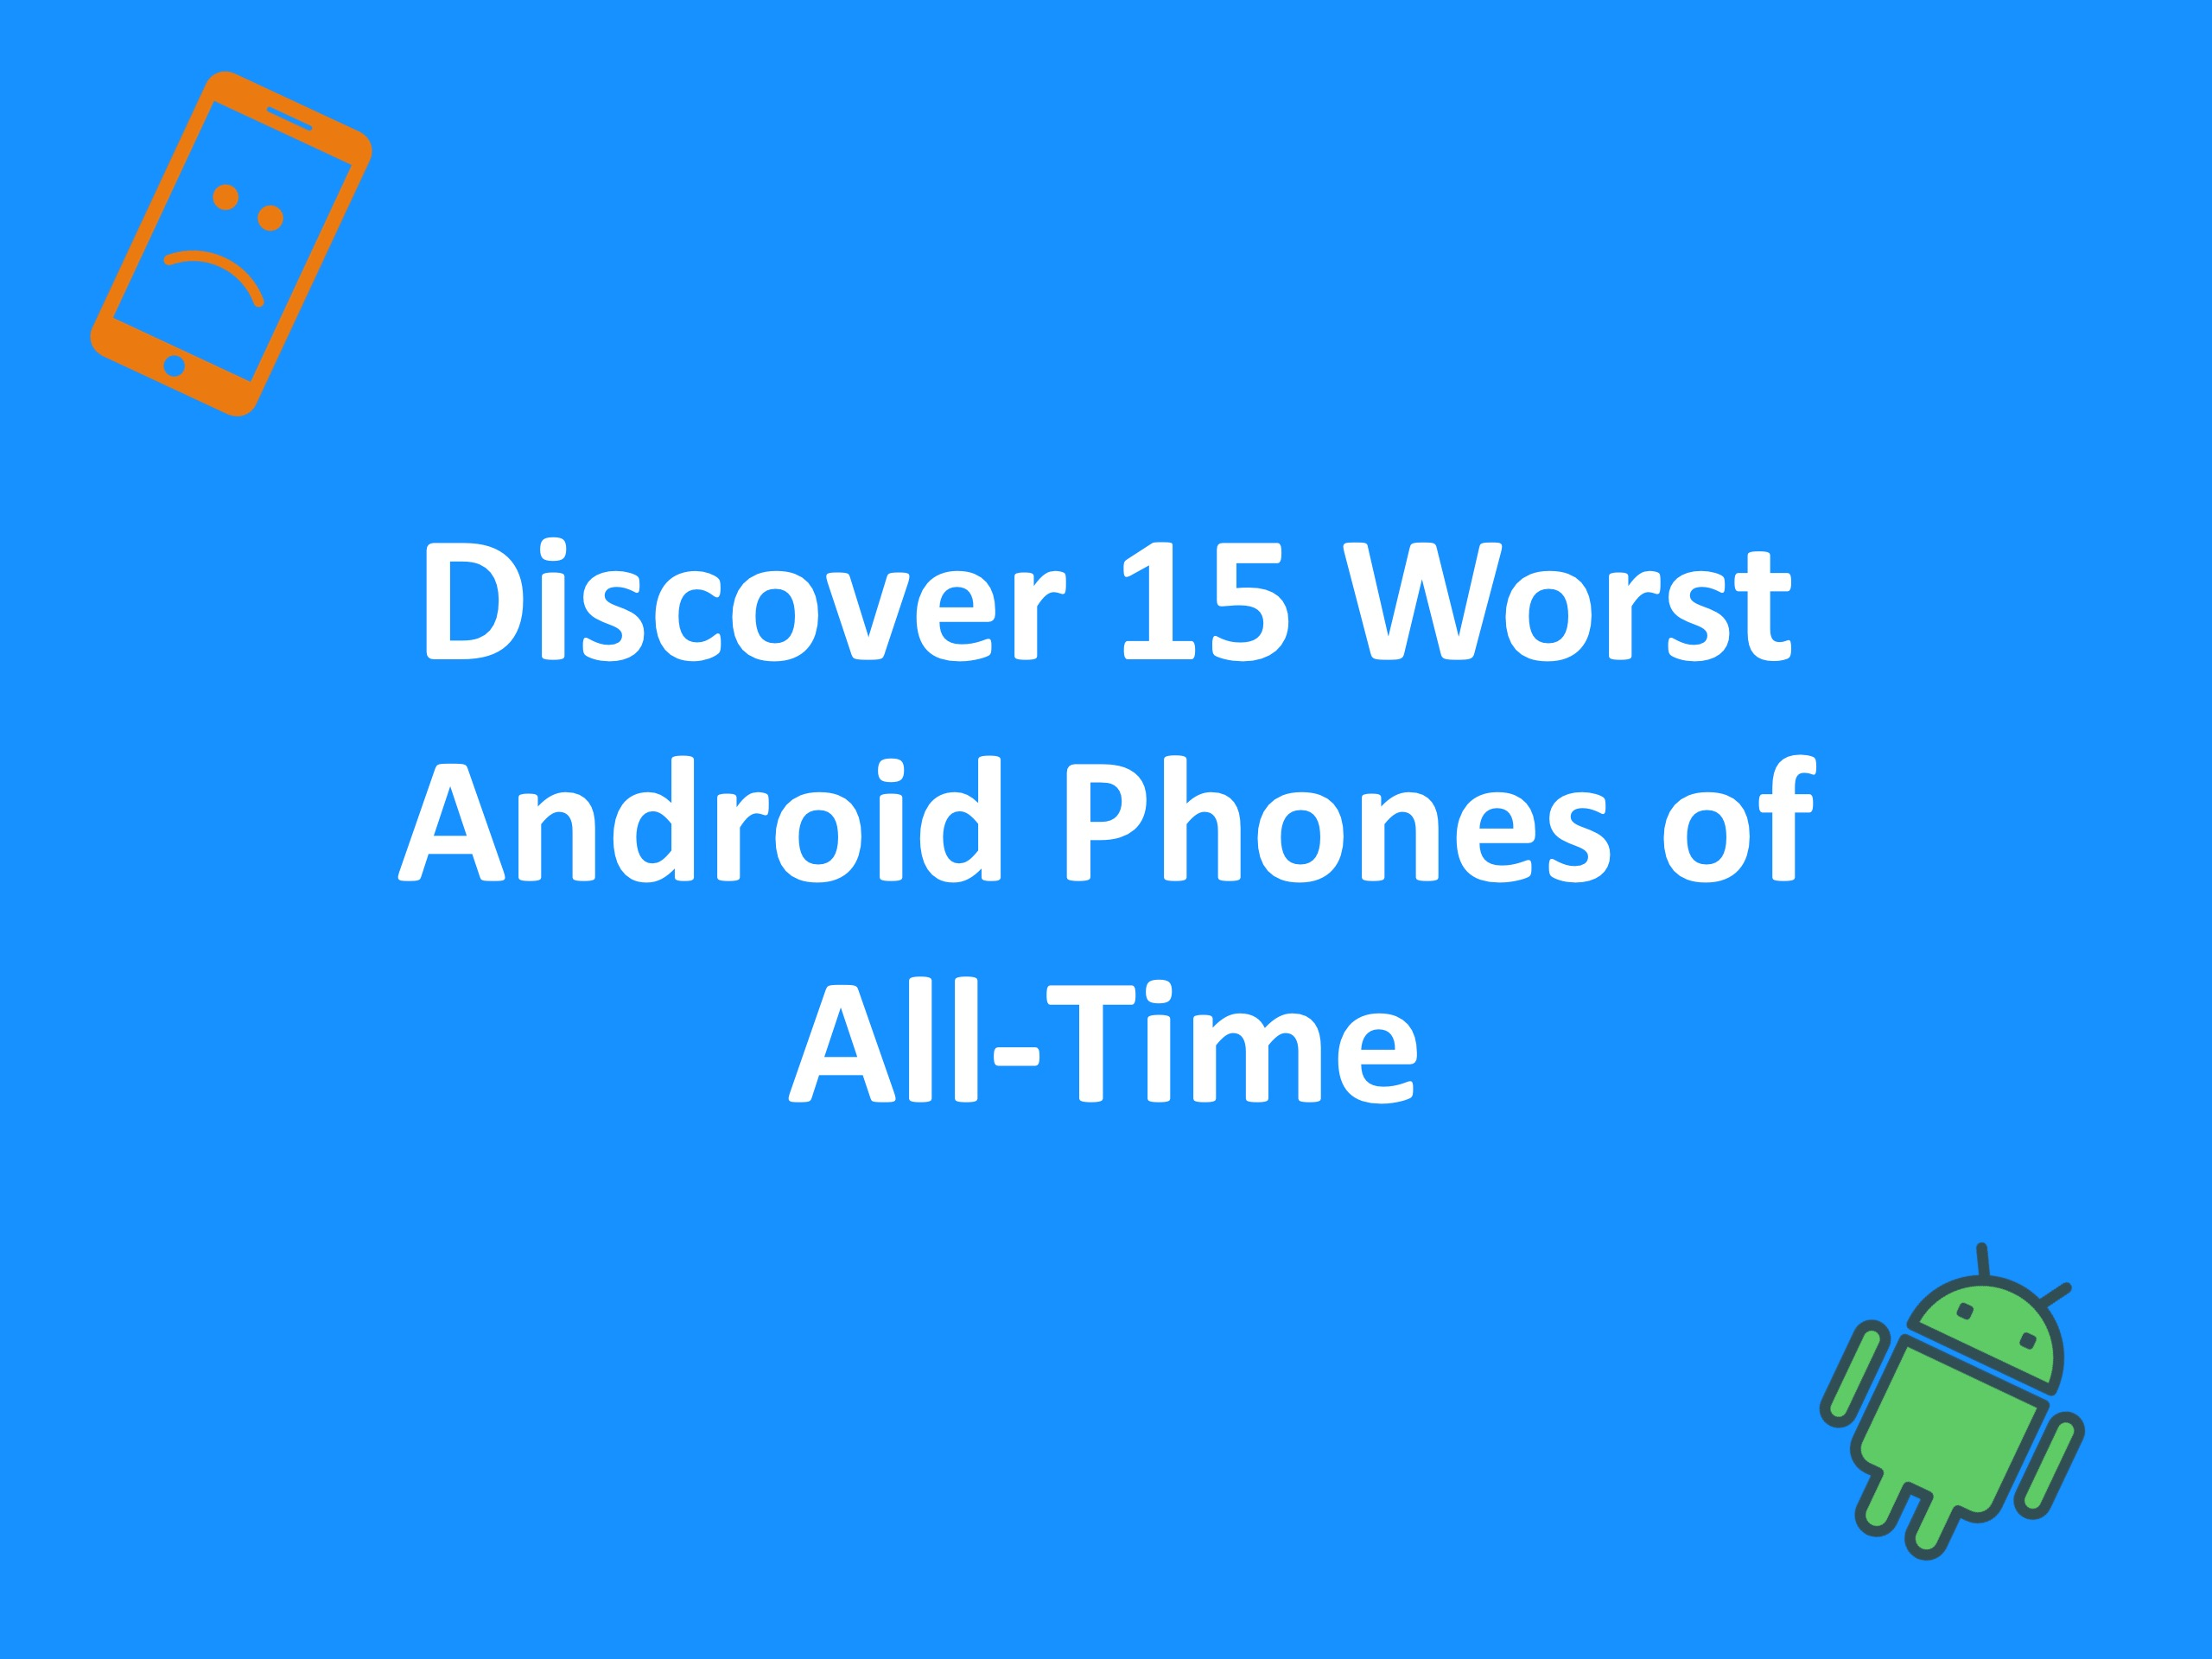 Discover the 15 Worst Android Phones of All Time